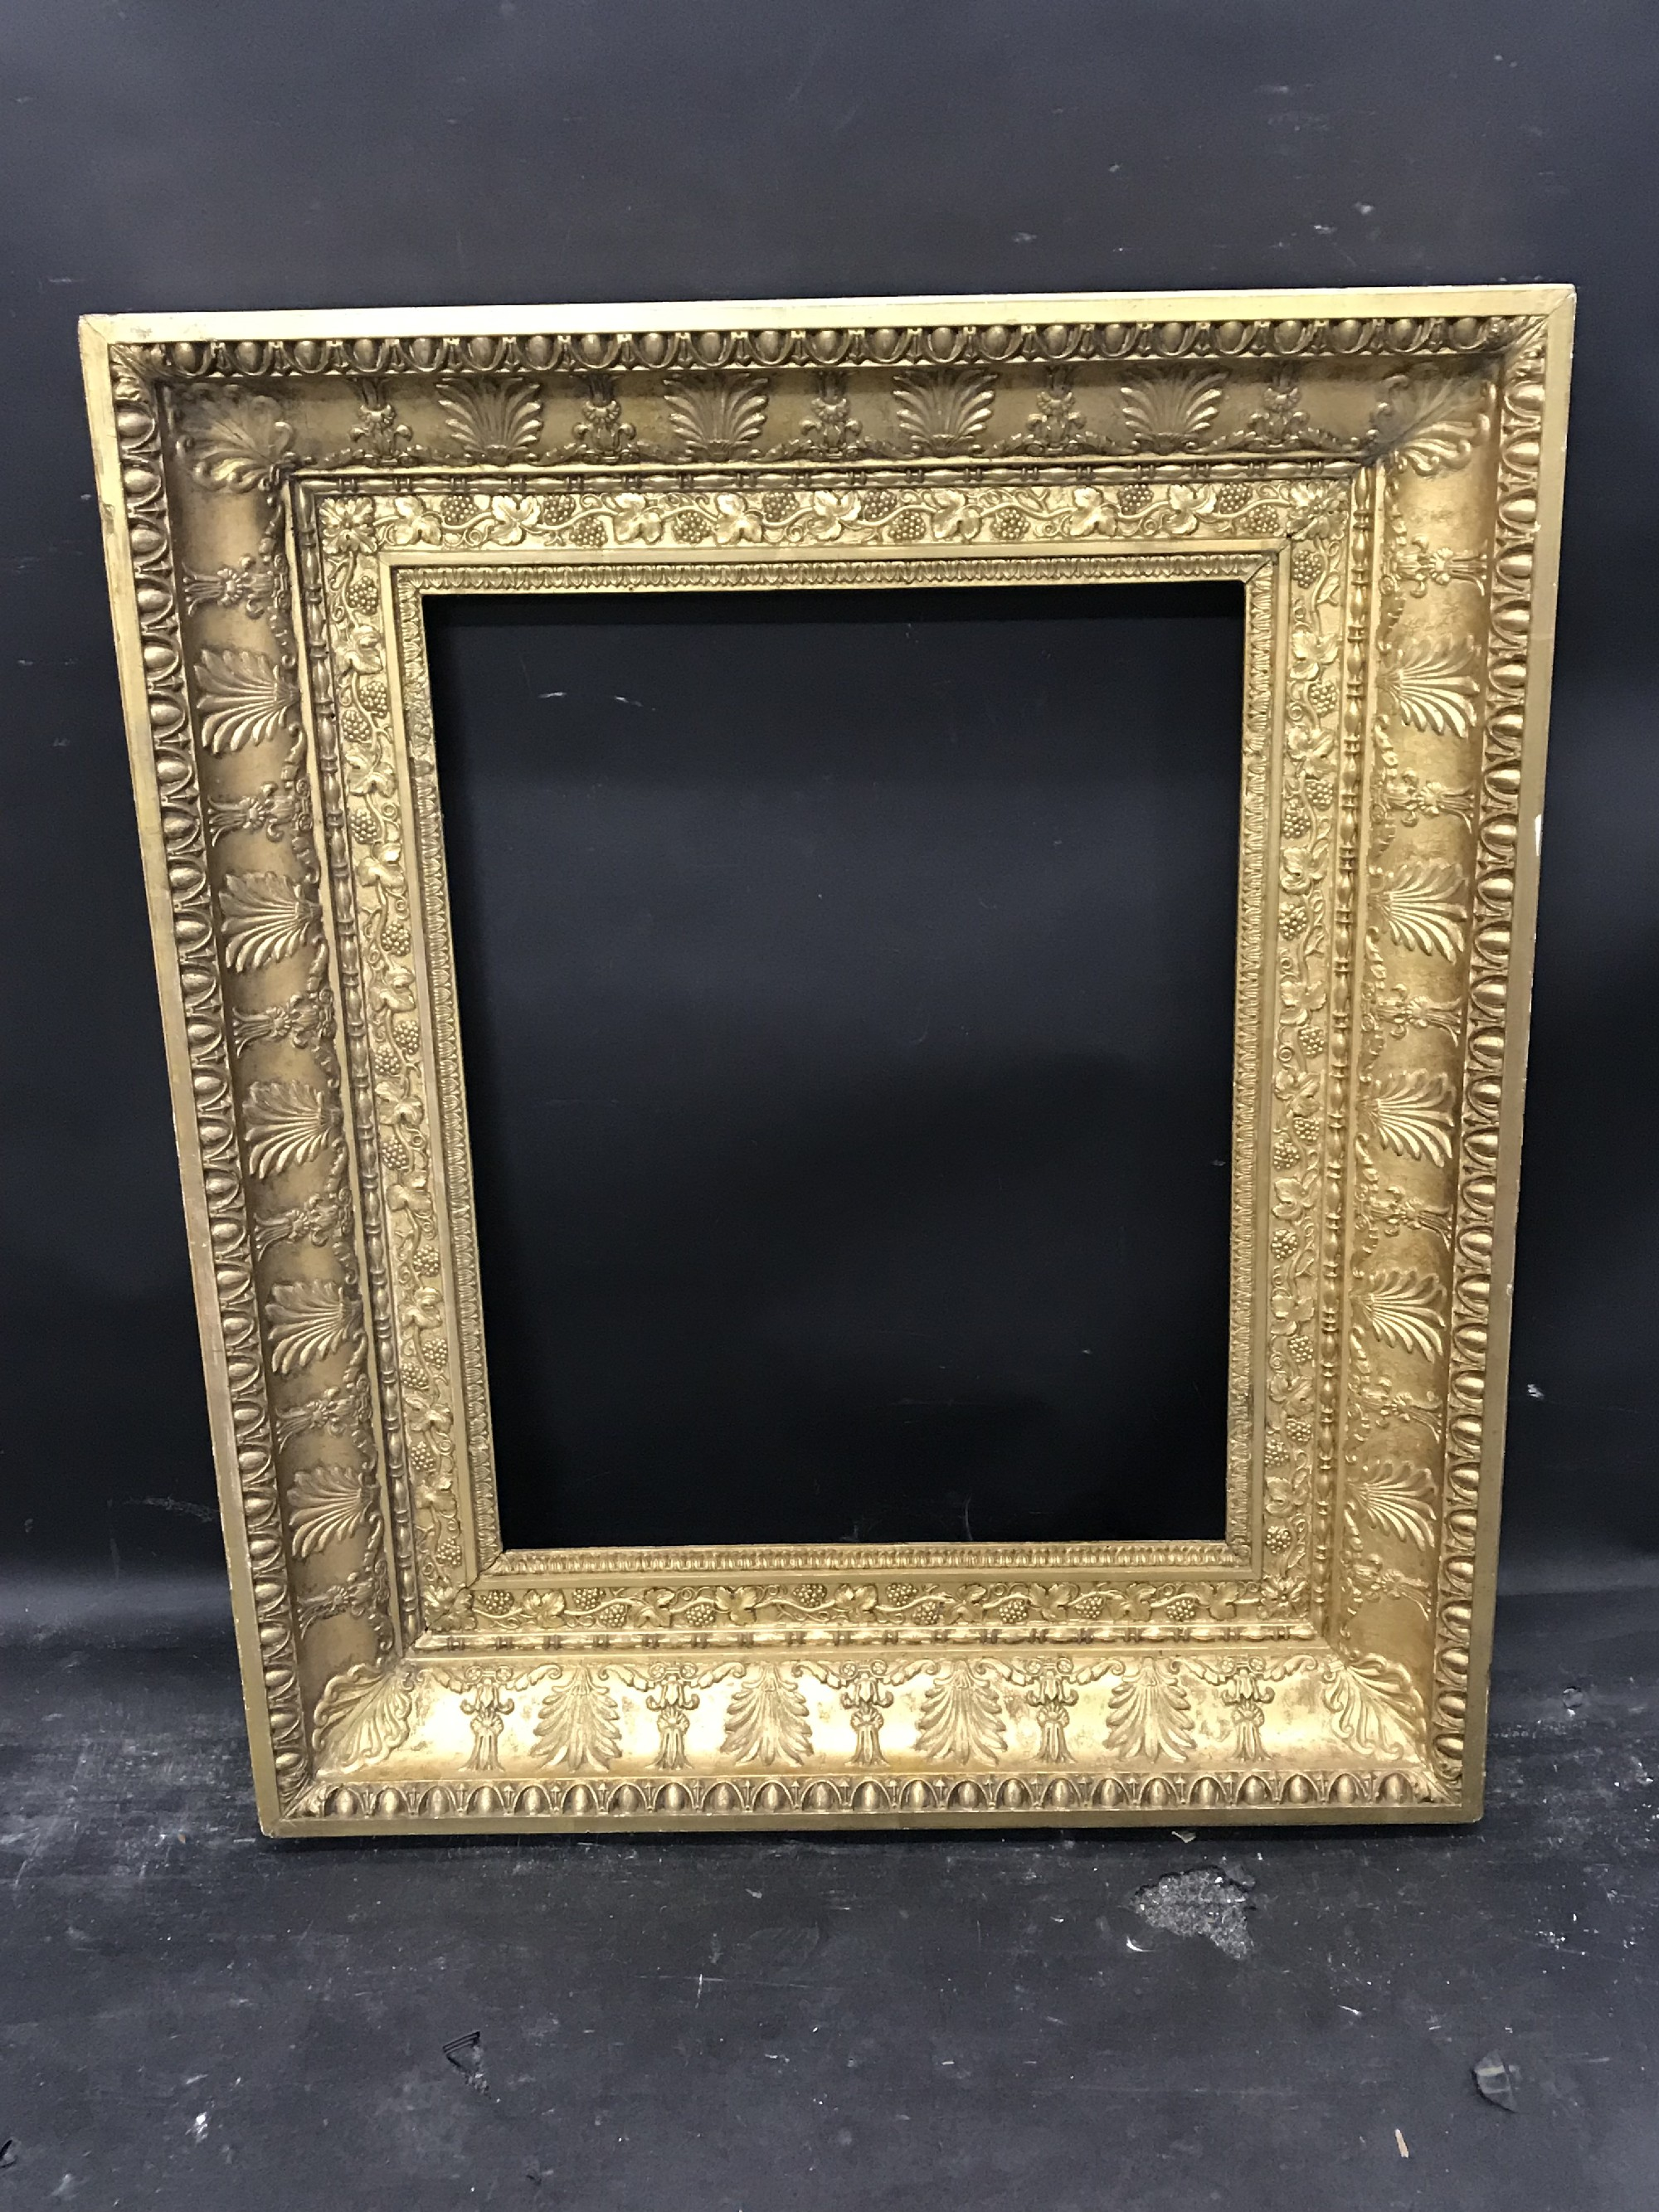 "Lot 47 - 19th Century French School. An Empire Style Frame, 19.5"" x 15.25""."